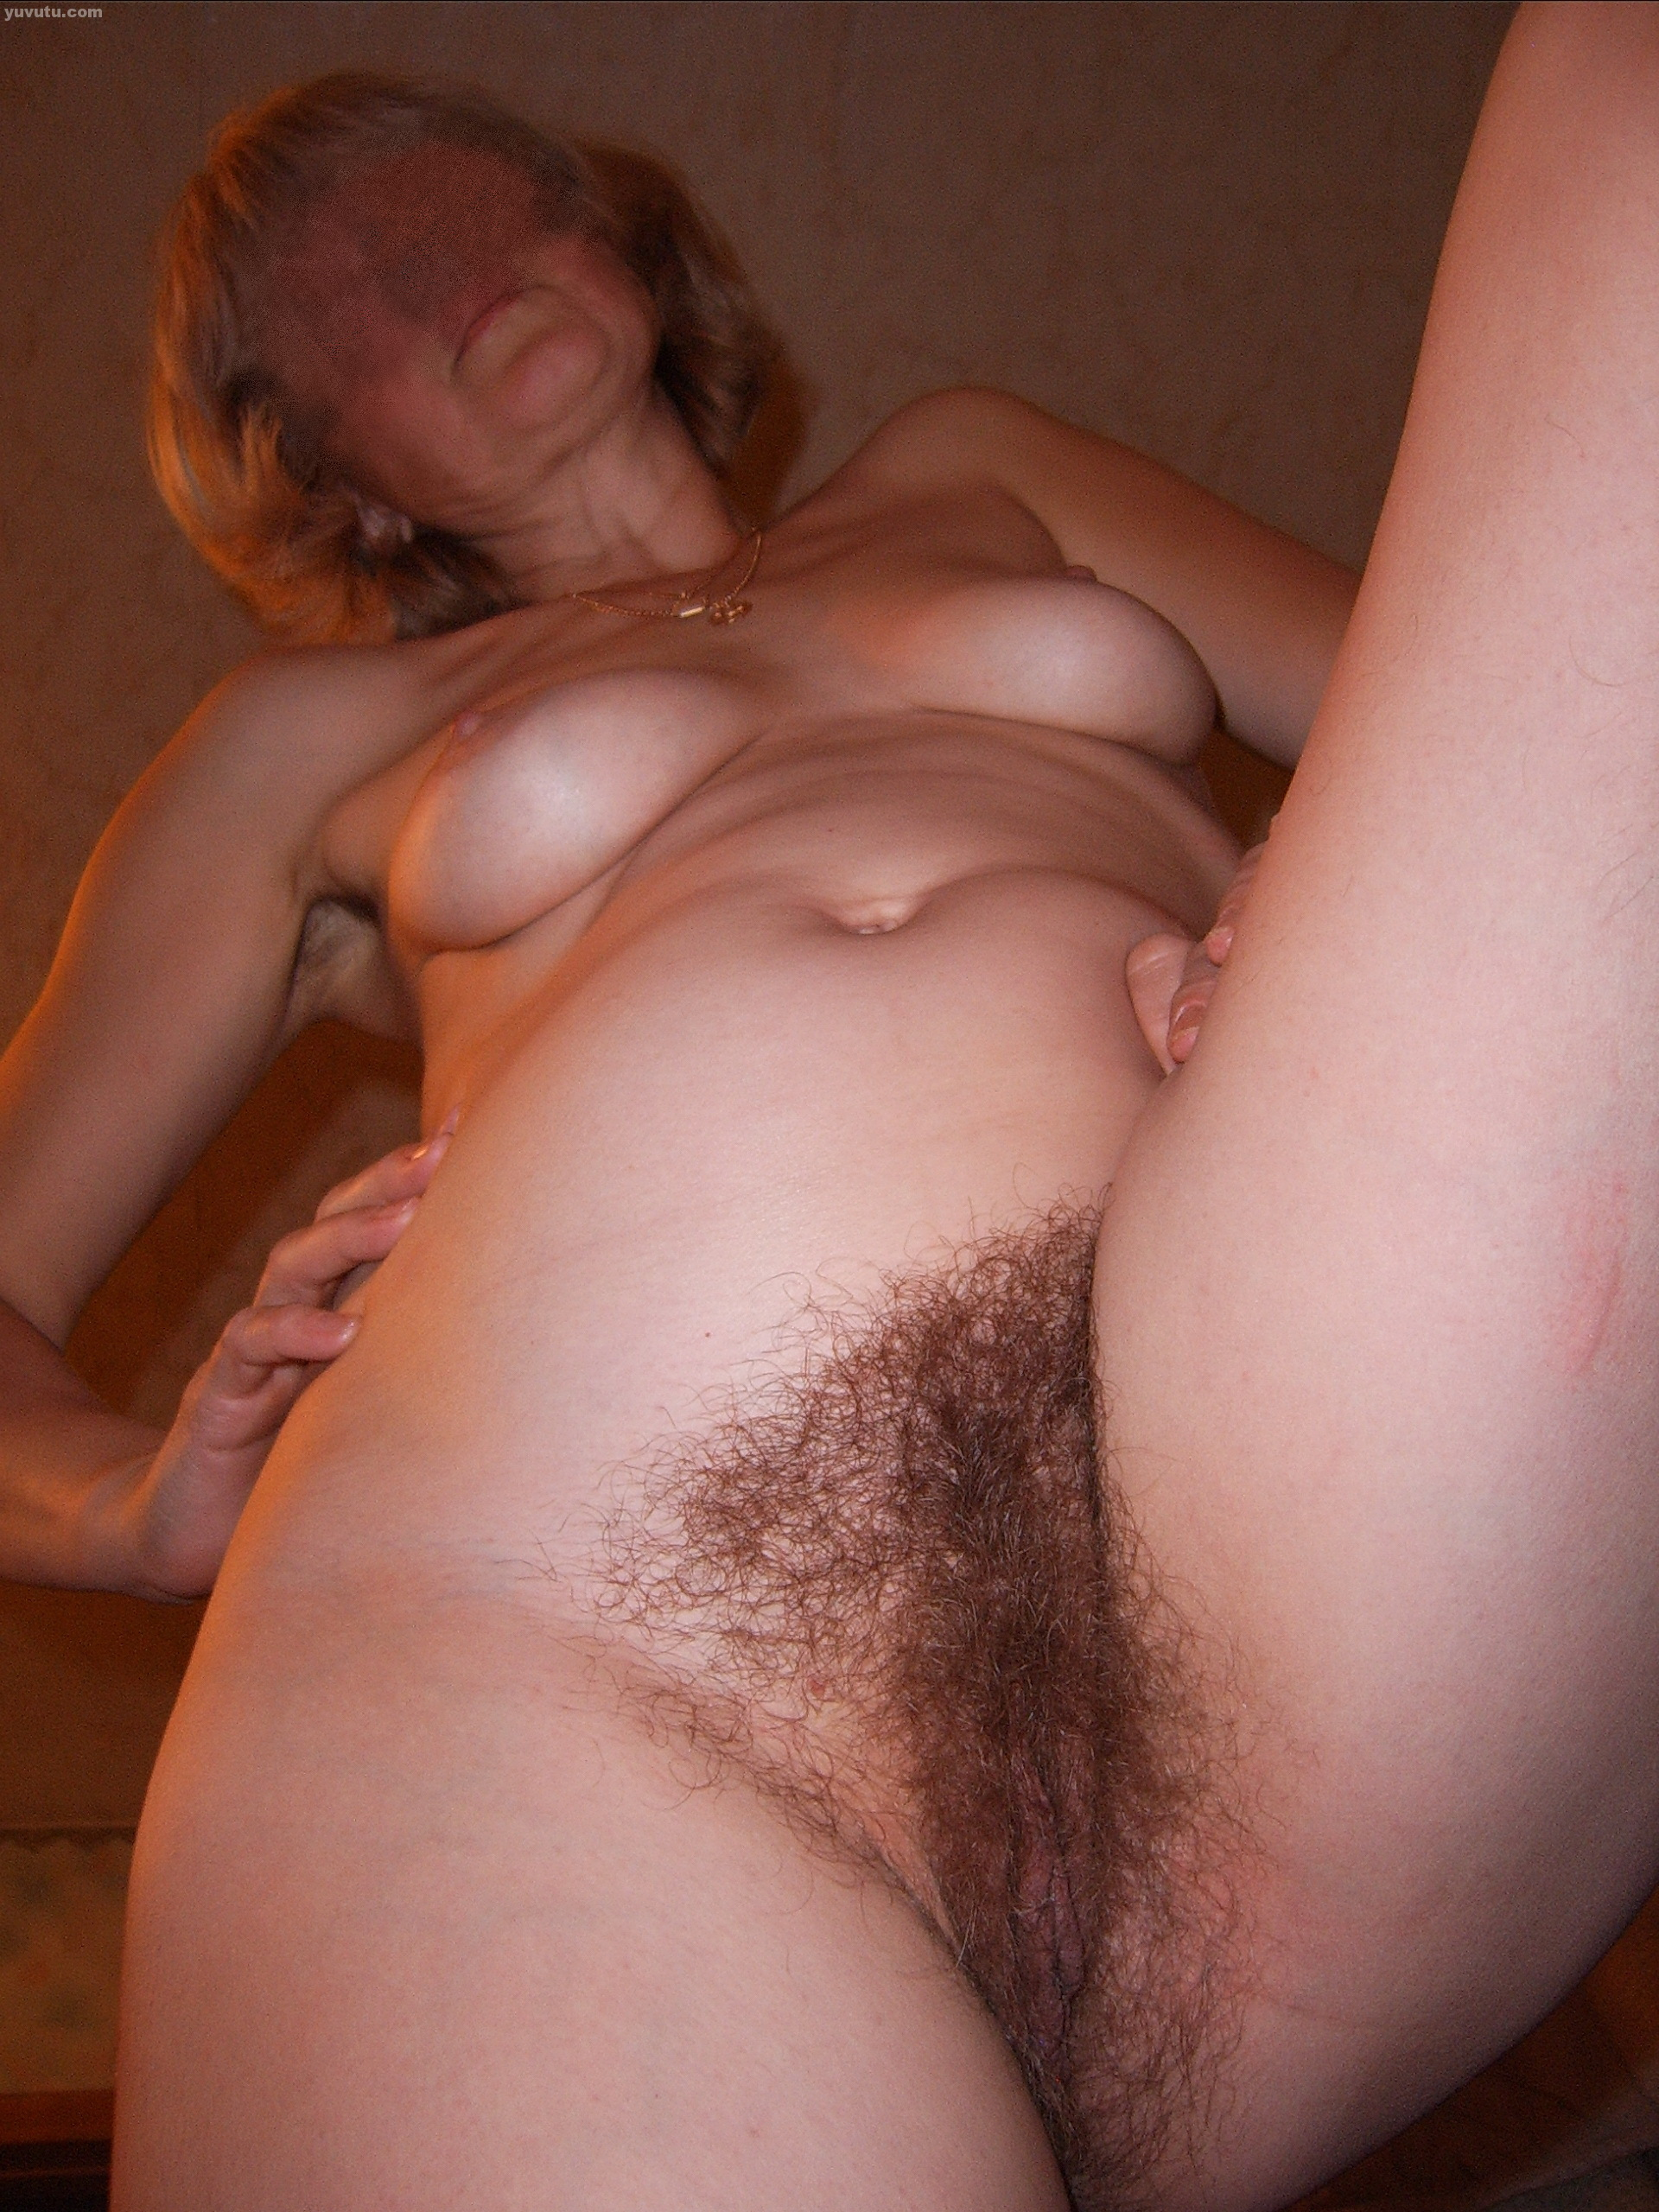 Will www.xxx my hairy wife vidios.com watching her